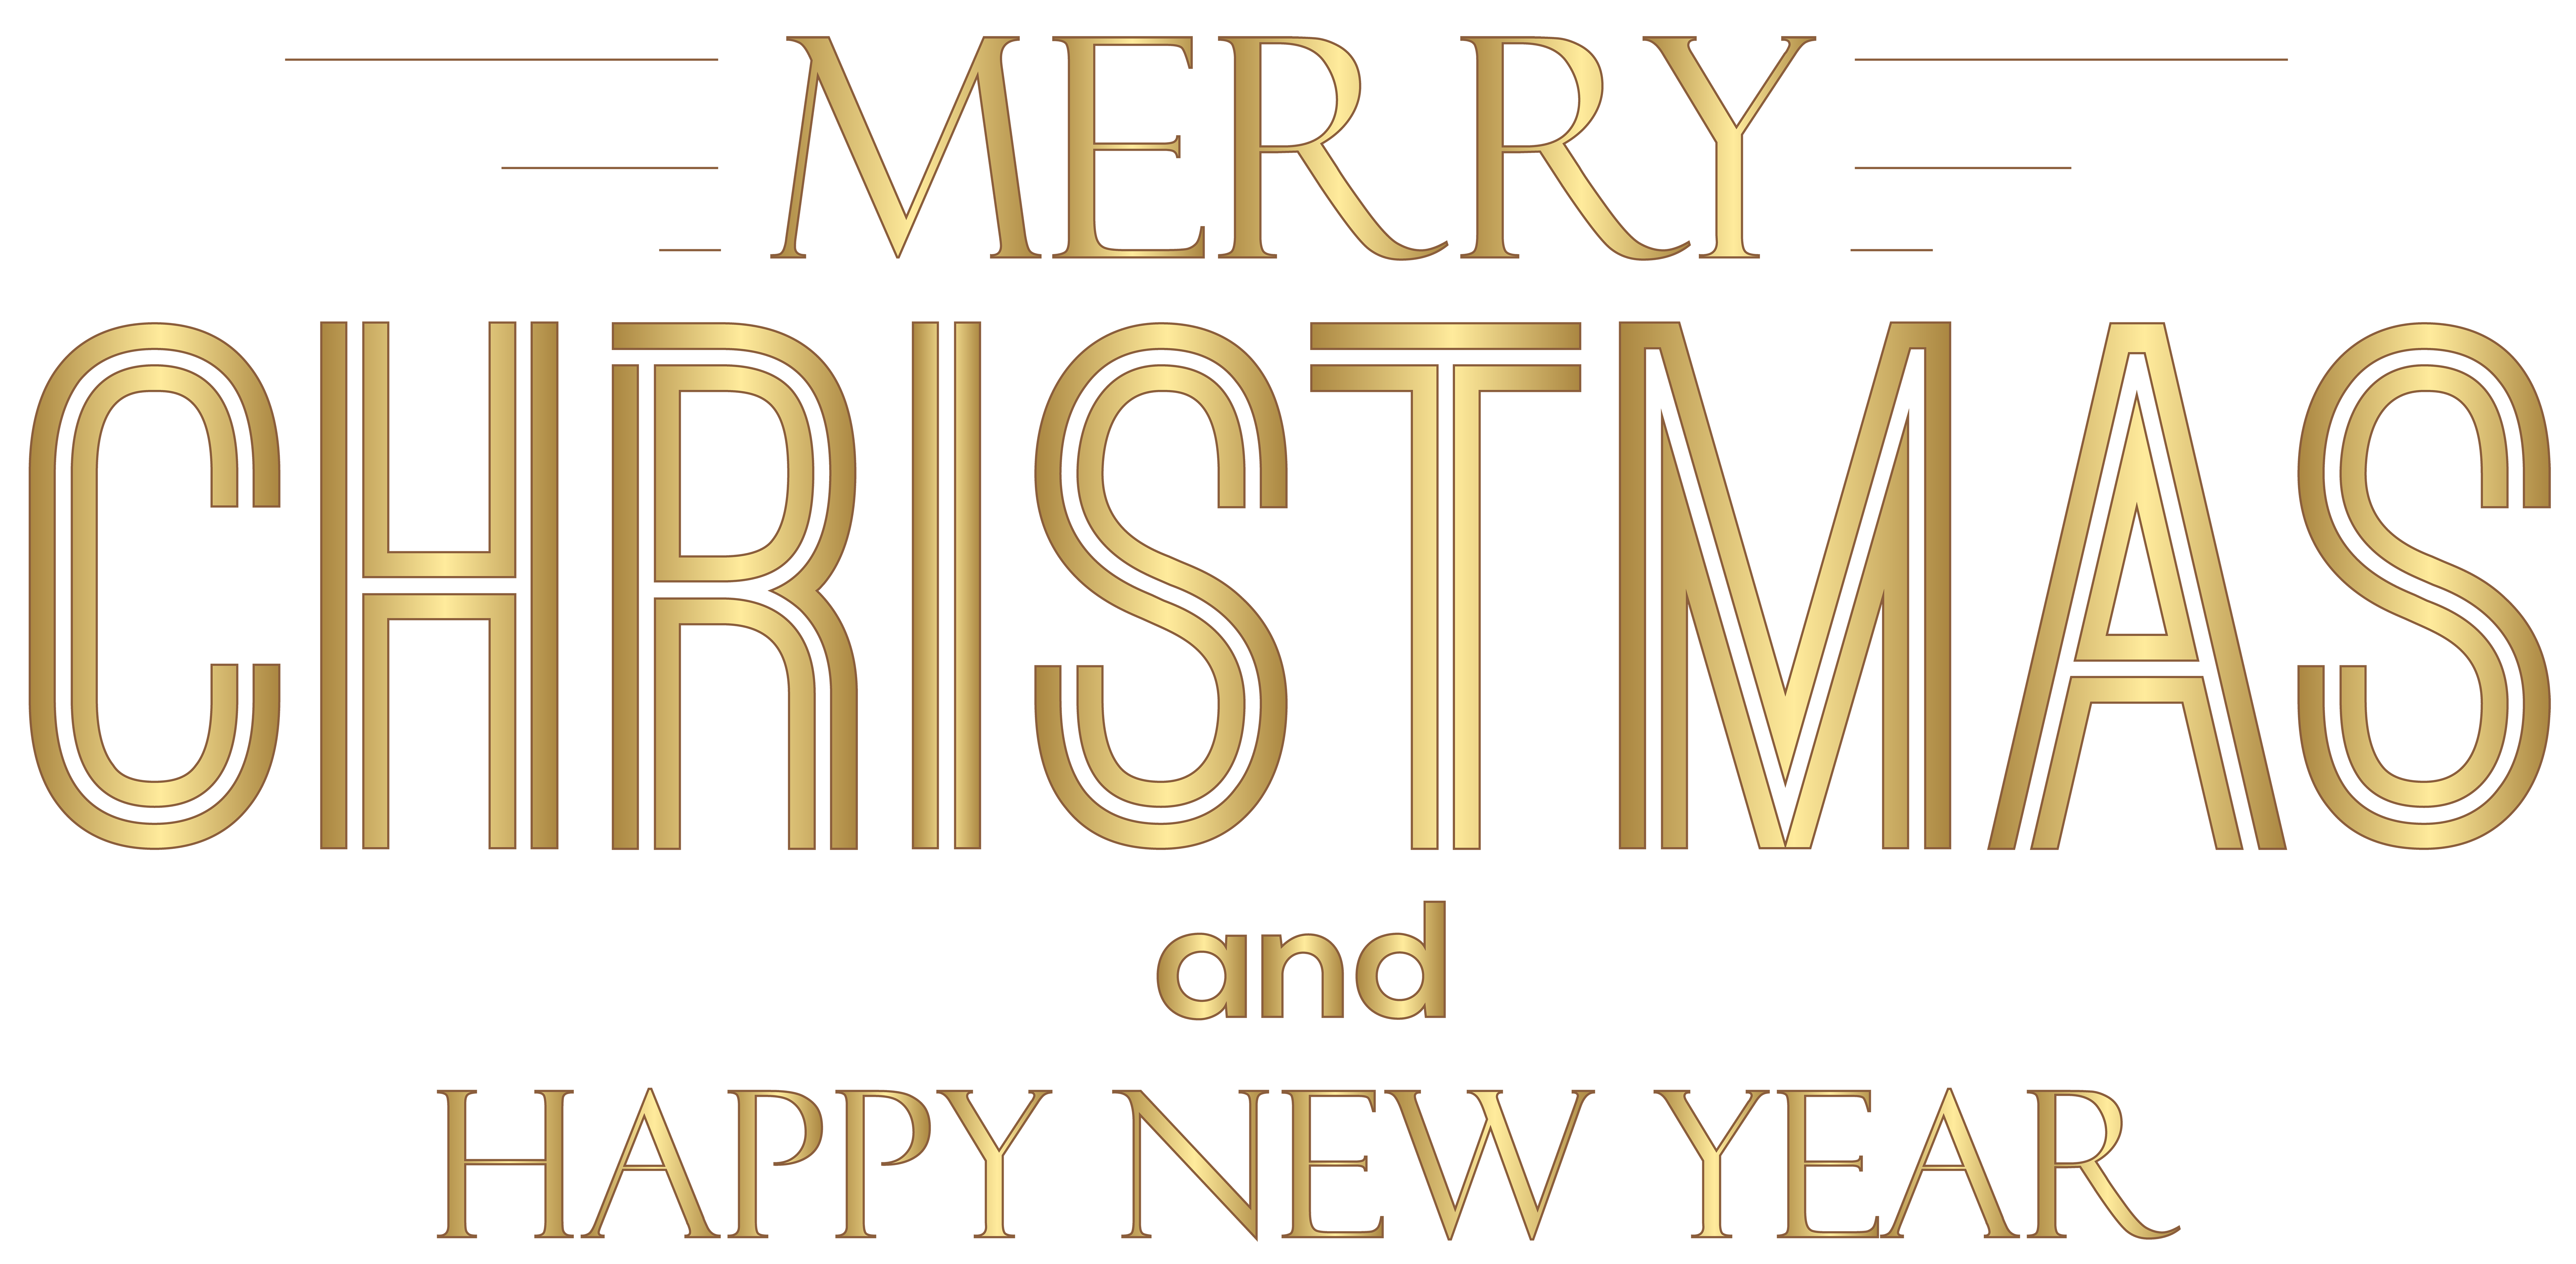 Merry Christmas and Happy New Year Text PNG Clip Art.